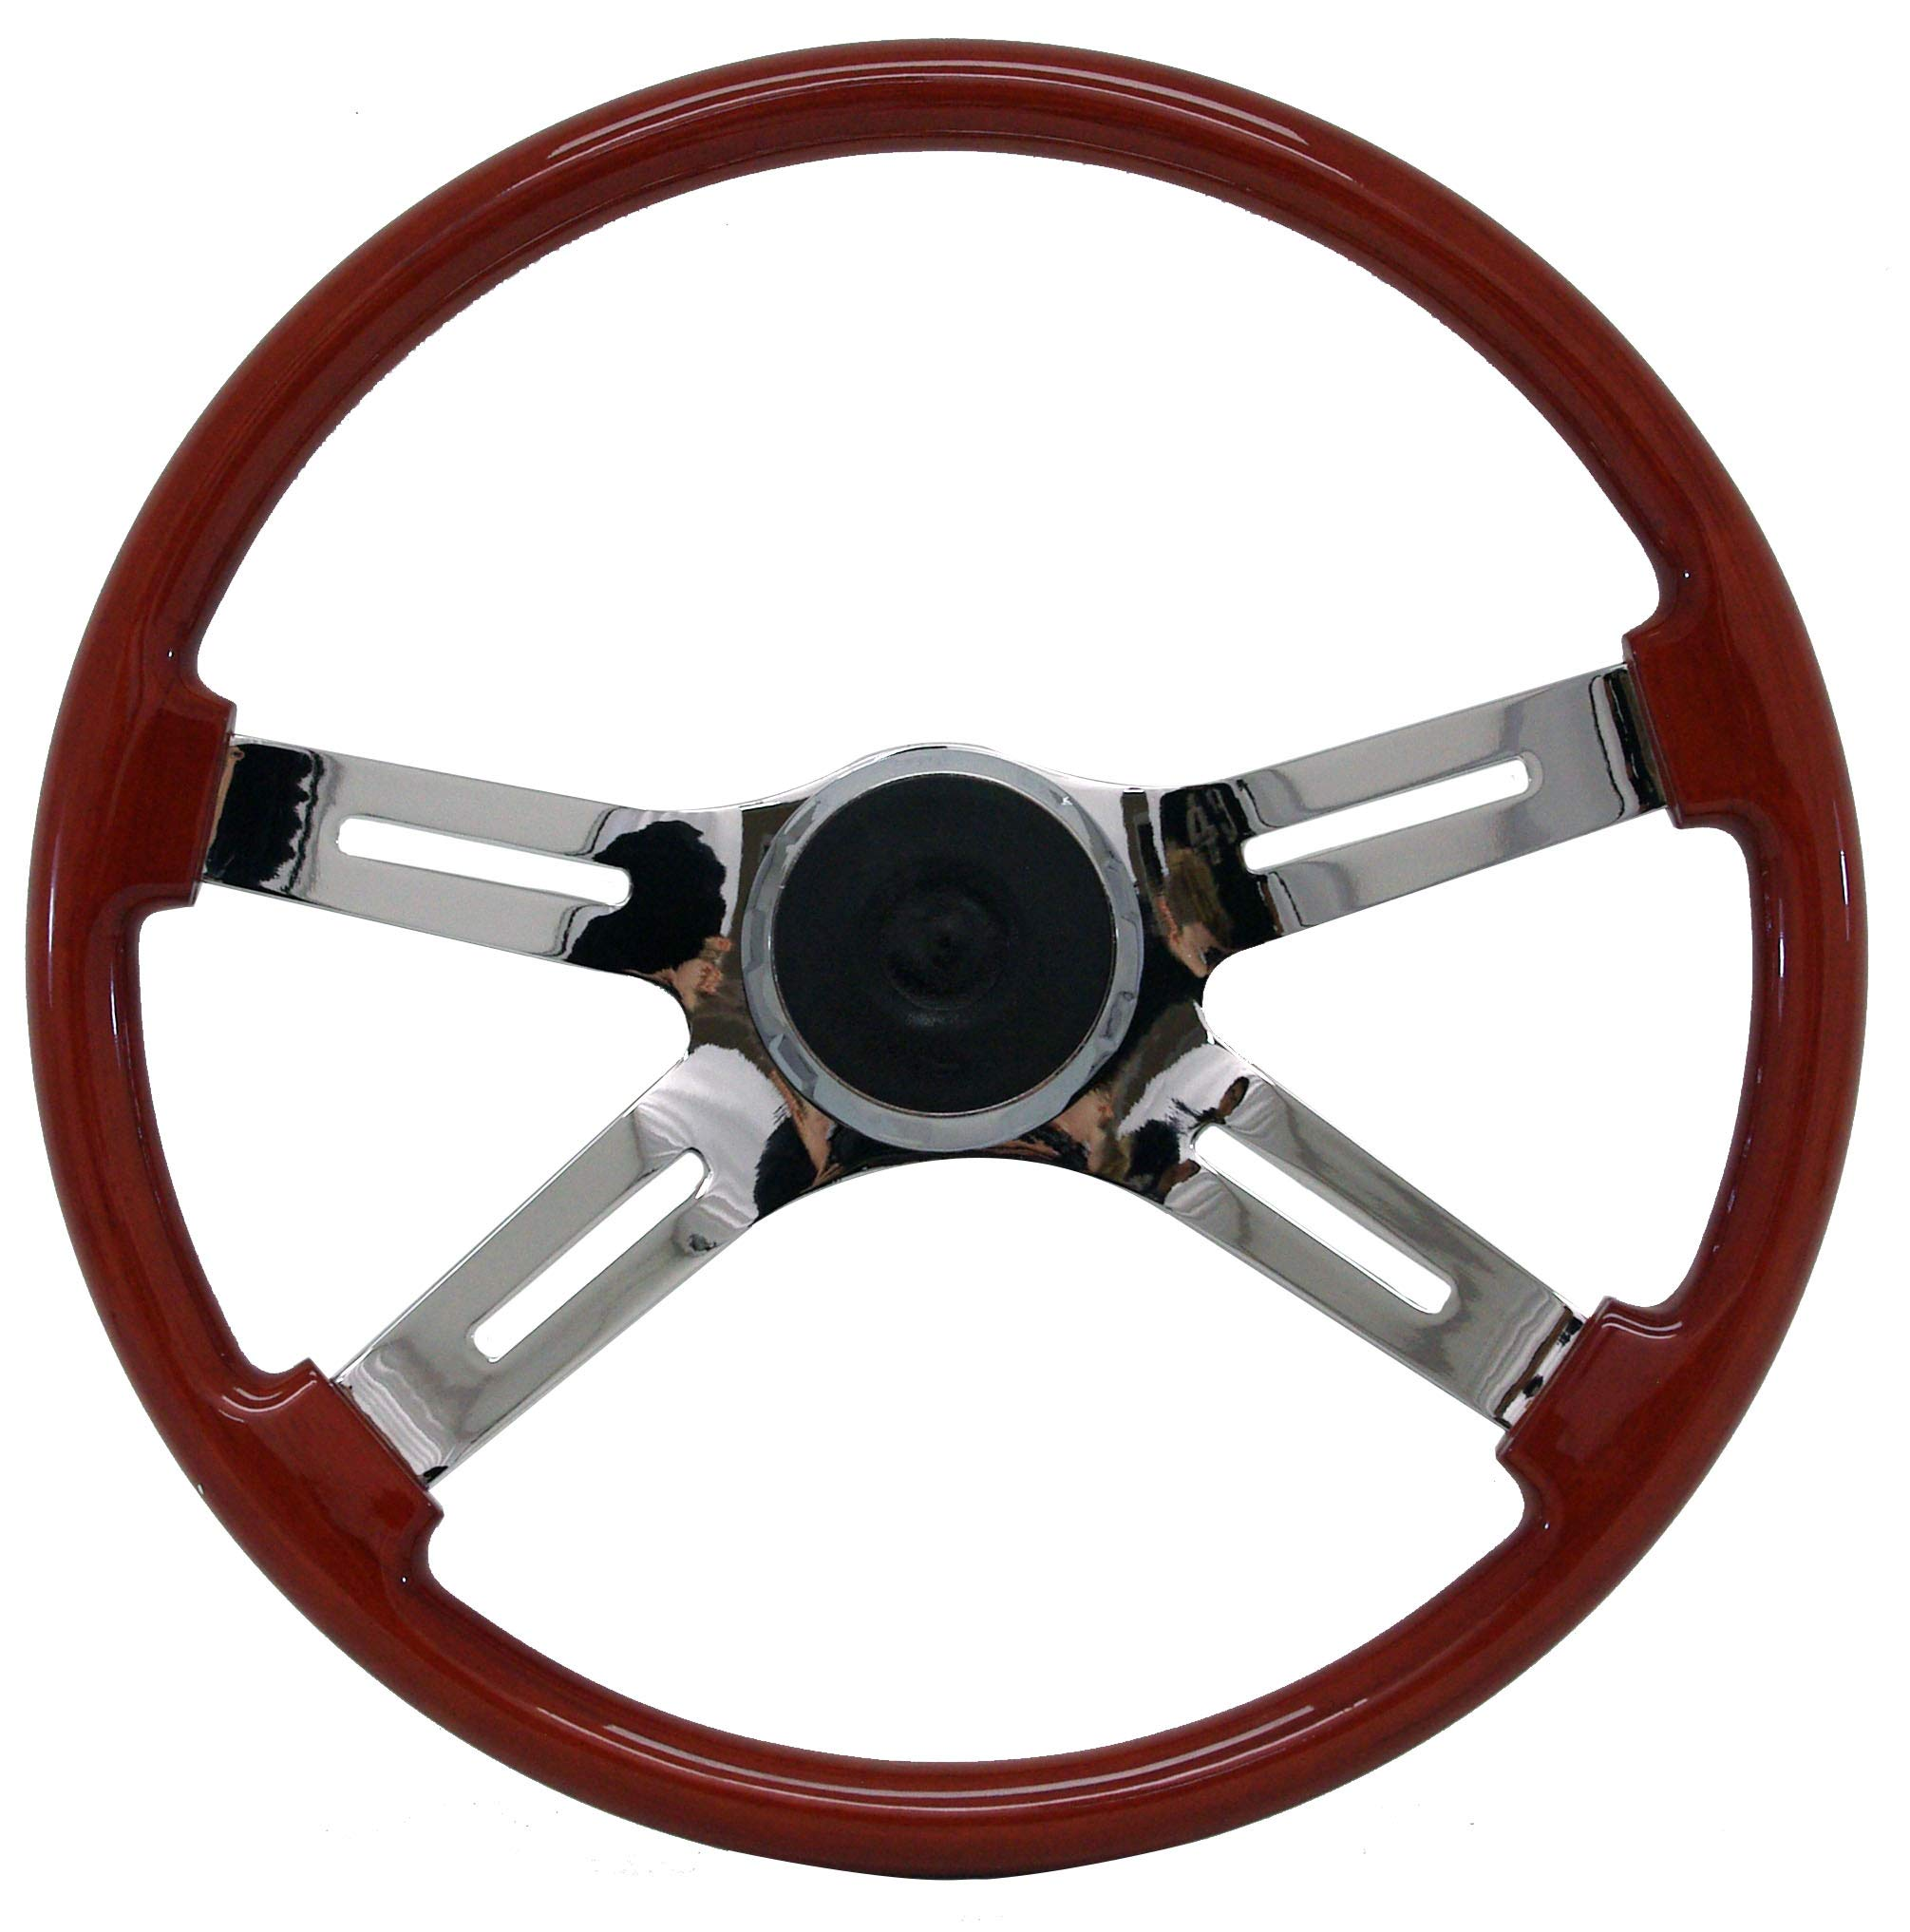 Woody's WP-SWKW Rosewood Chrome Truck Steering Wheel (Beautiful African Hardwood) by Woody's